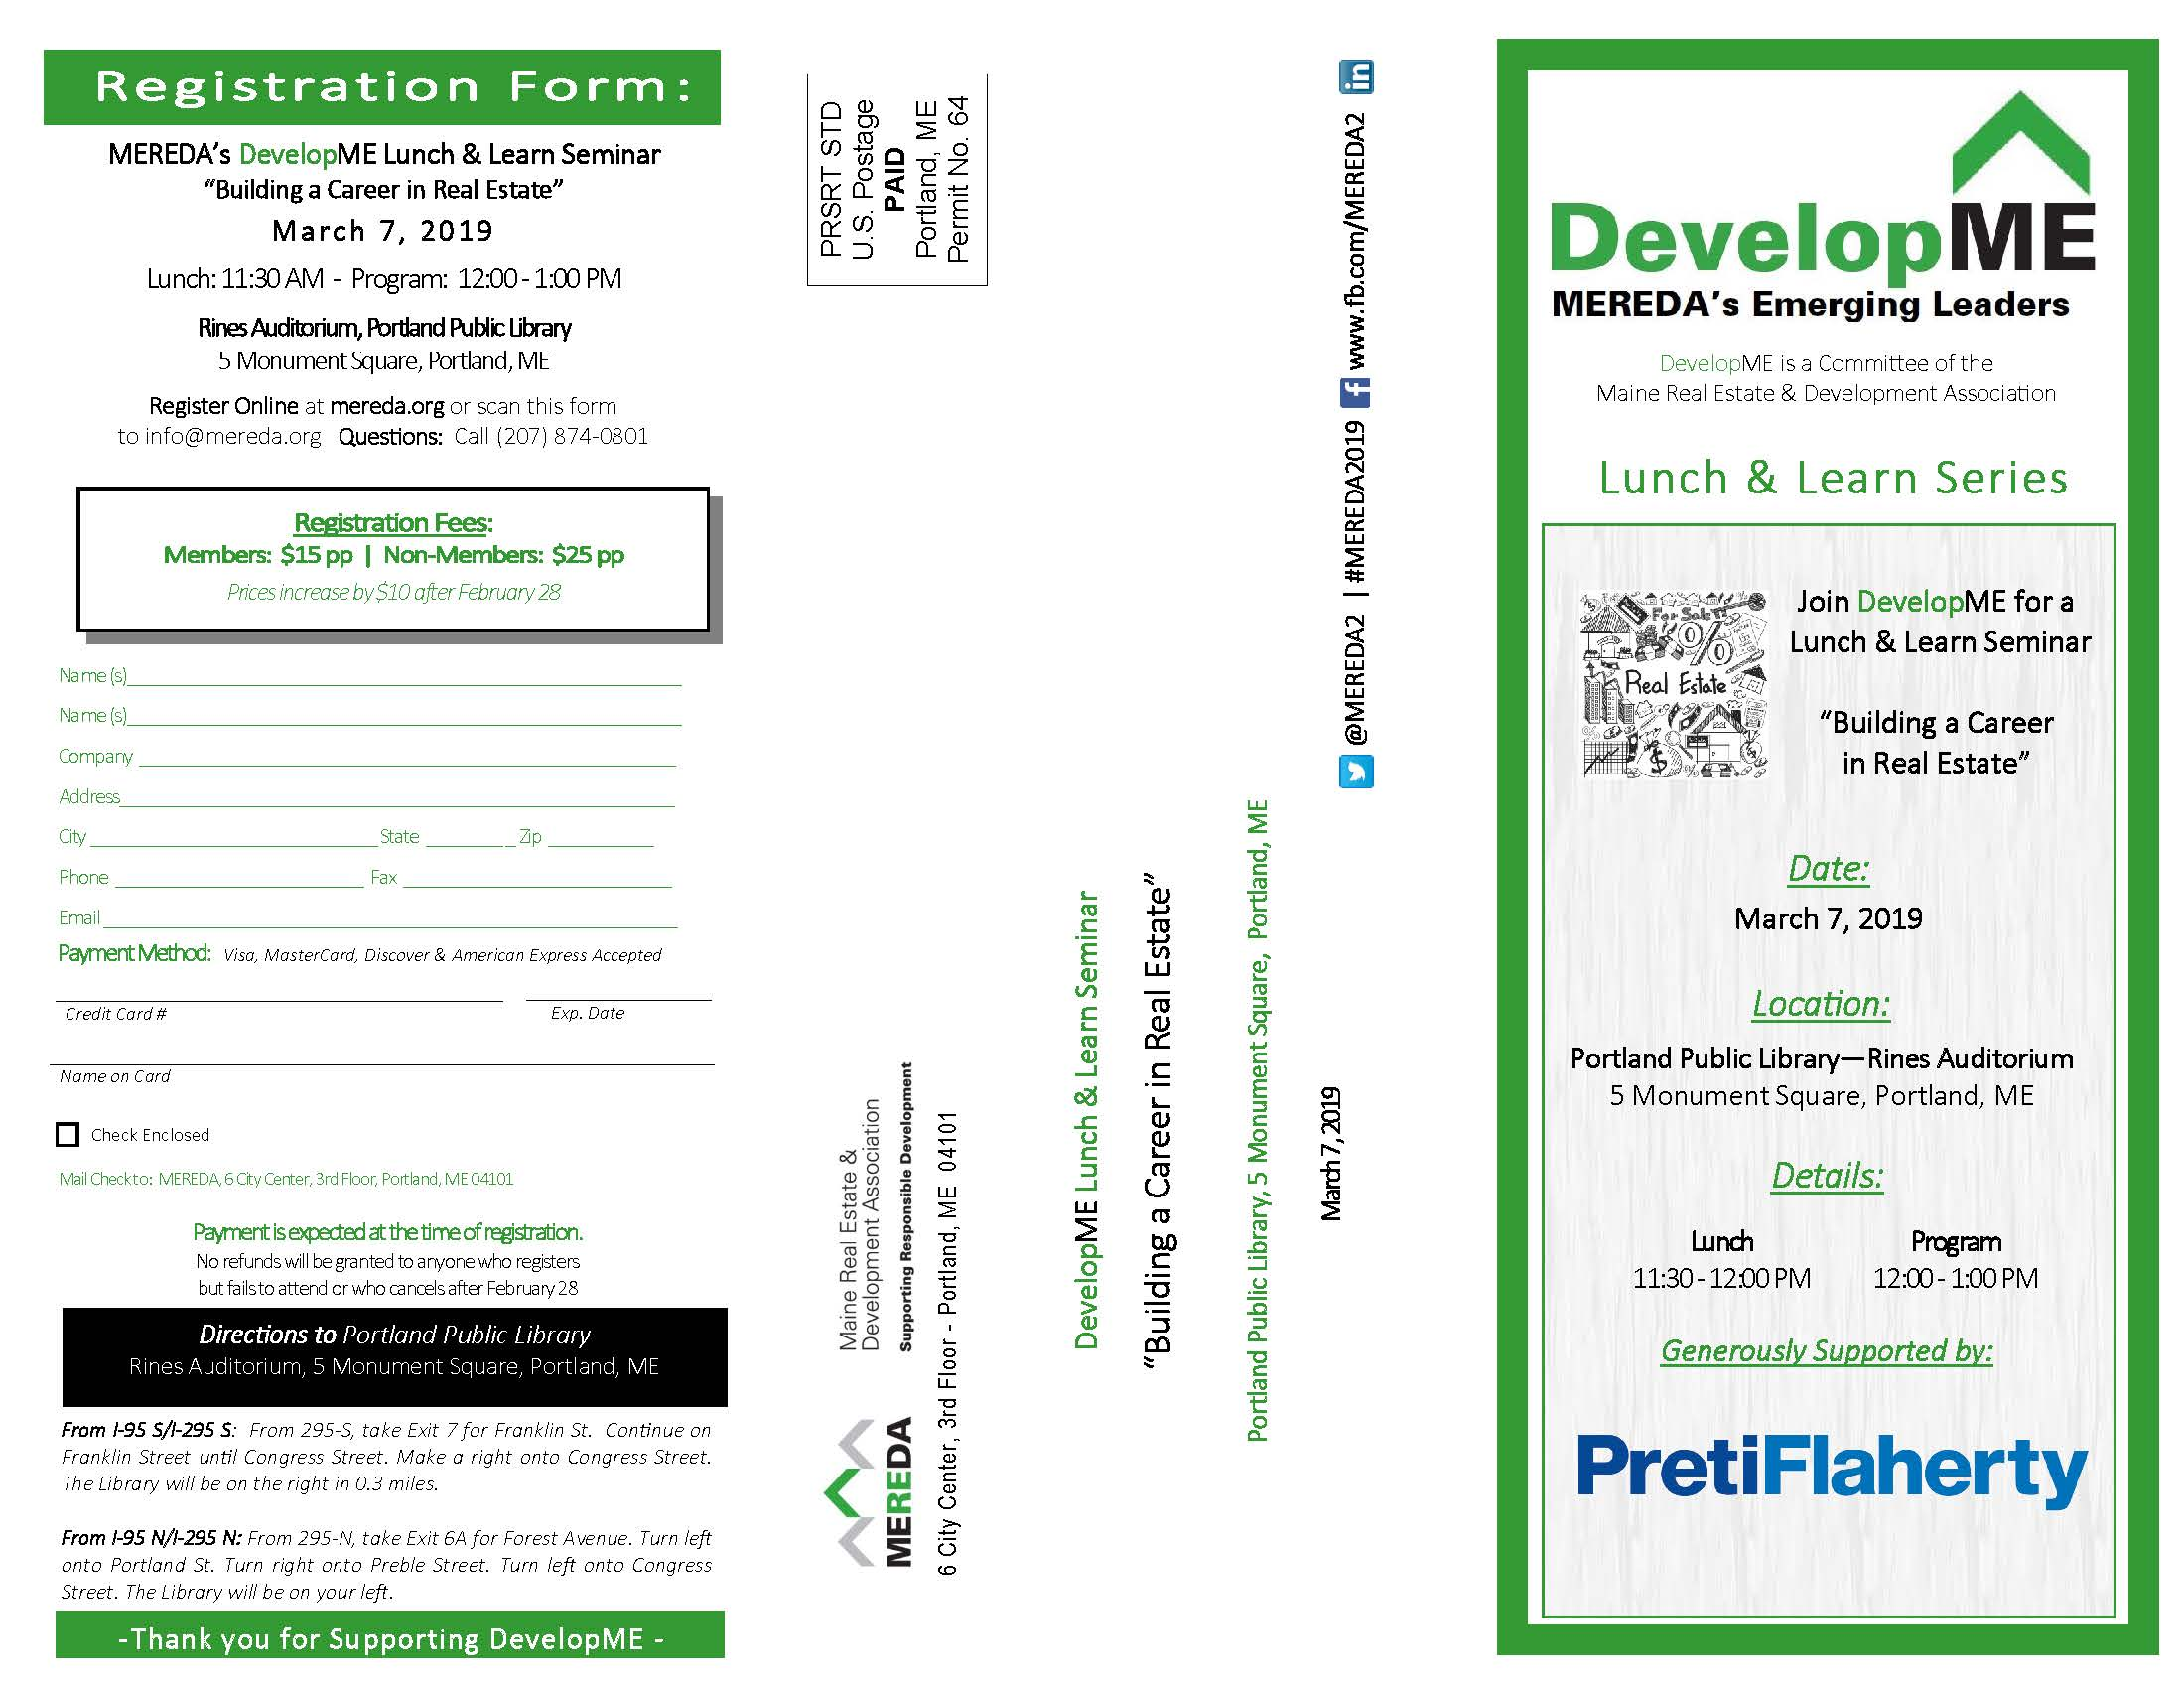 Event Mailer DevelopME LL 3.7.19